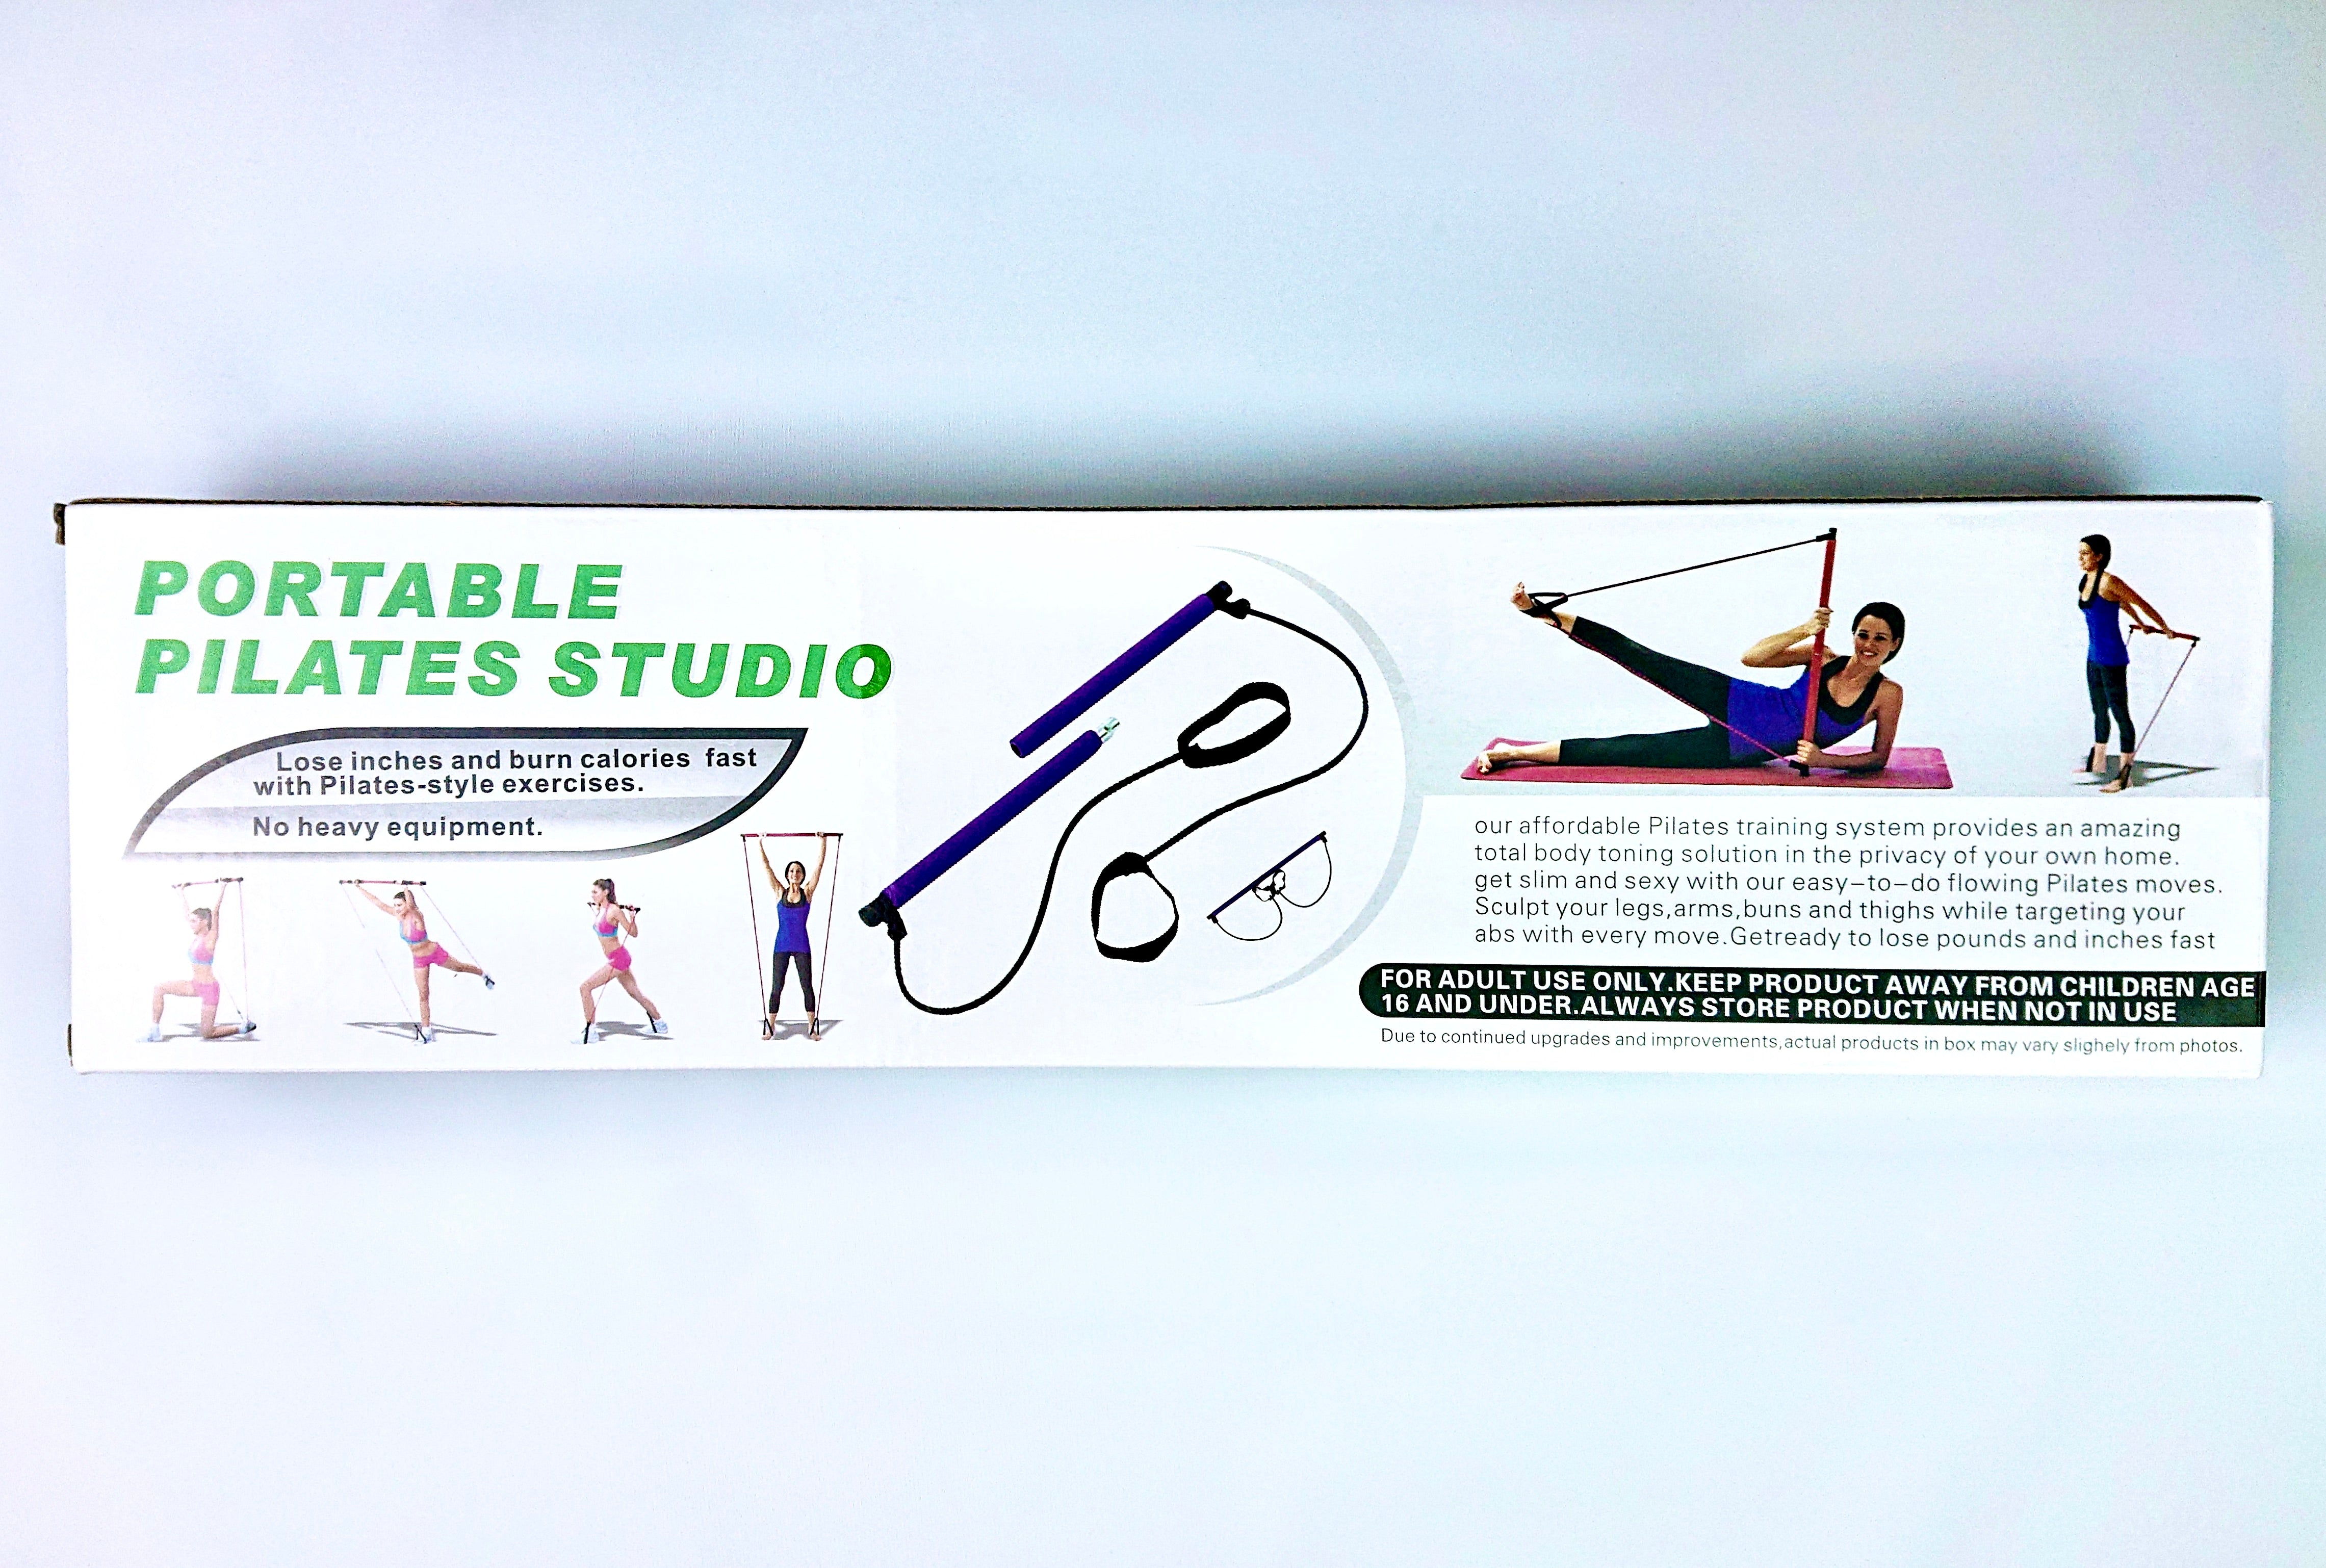 Portable Pilates Studio in a box, free gift